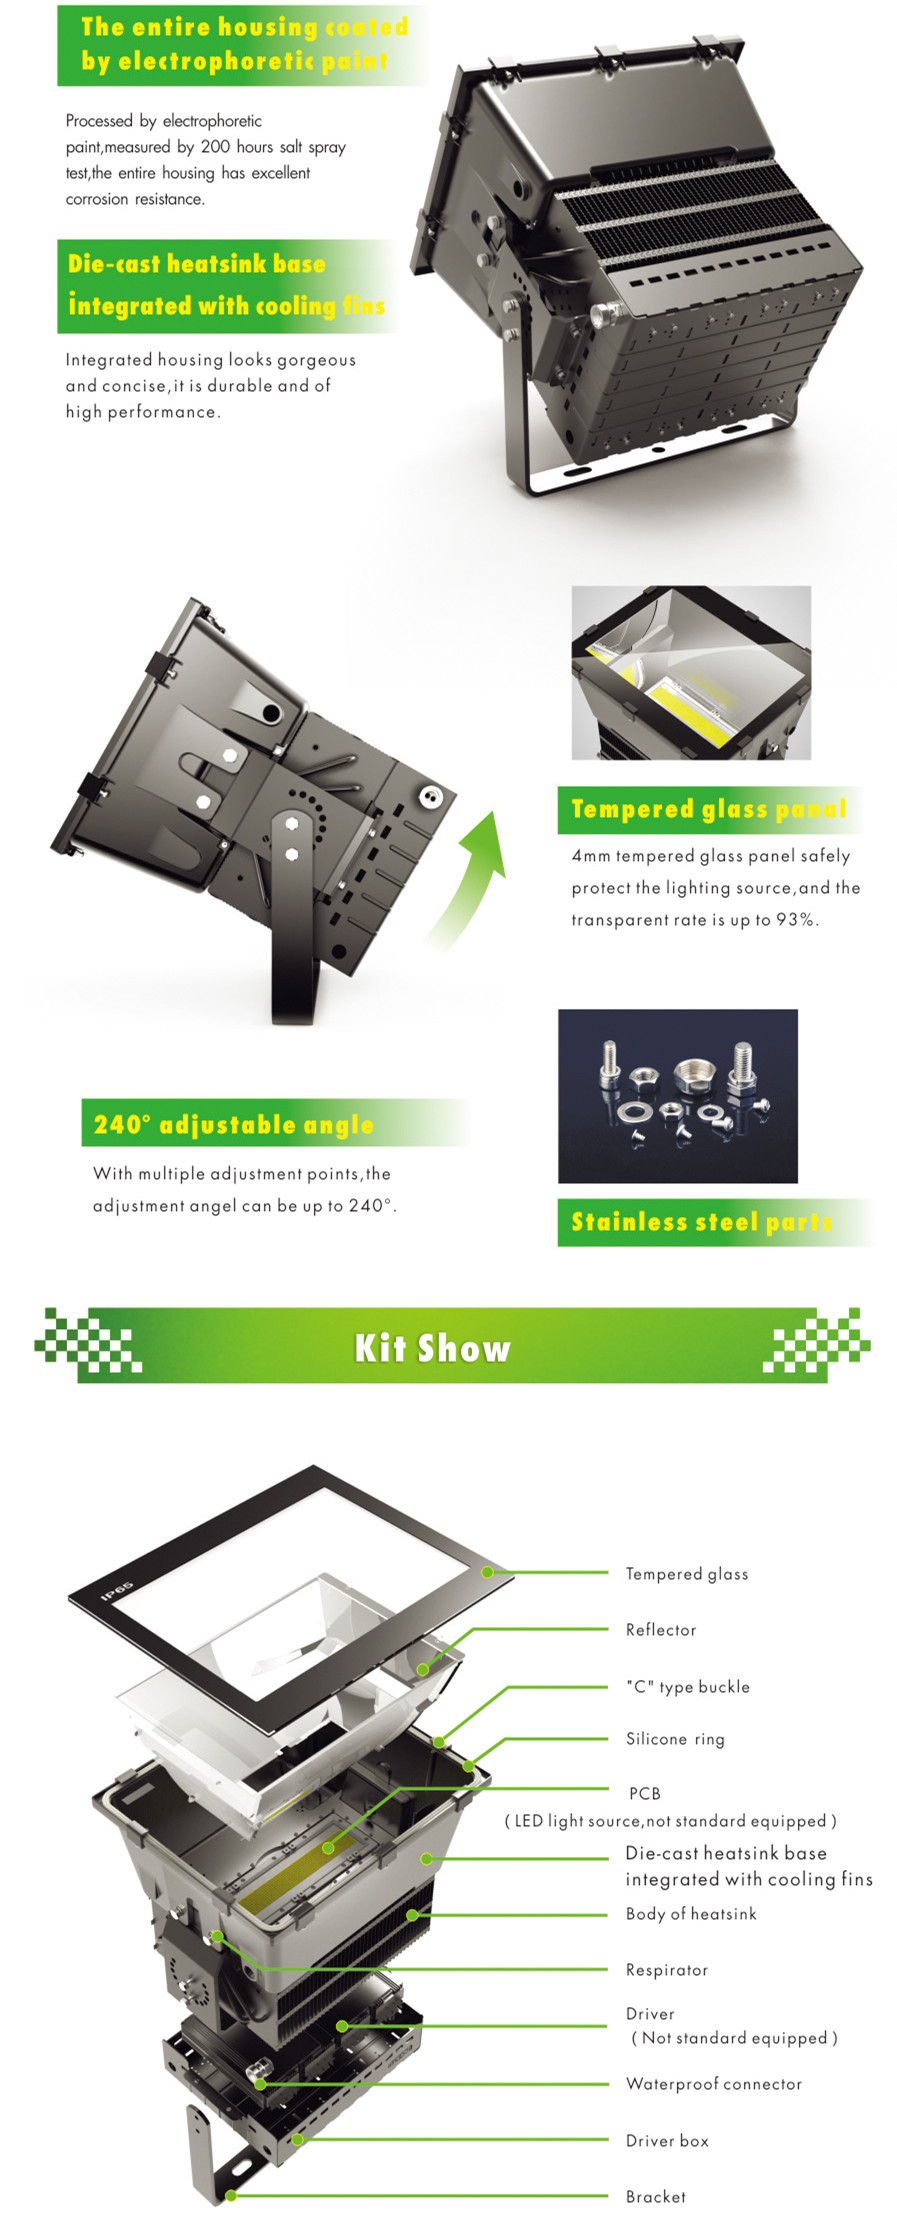 CREE XTE 1000W LED sports field lighting with Meanwell driver